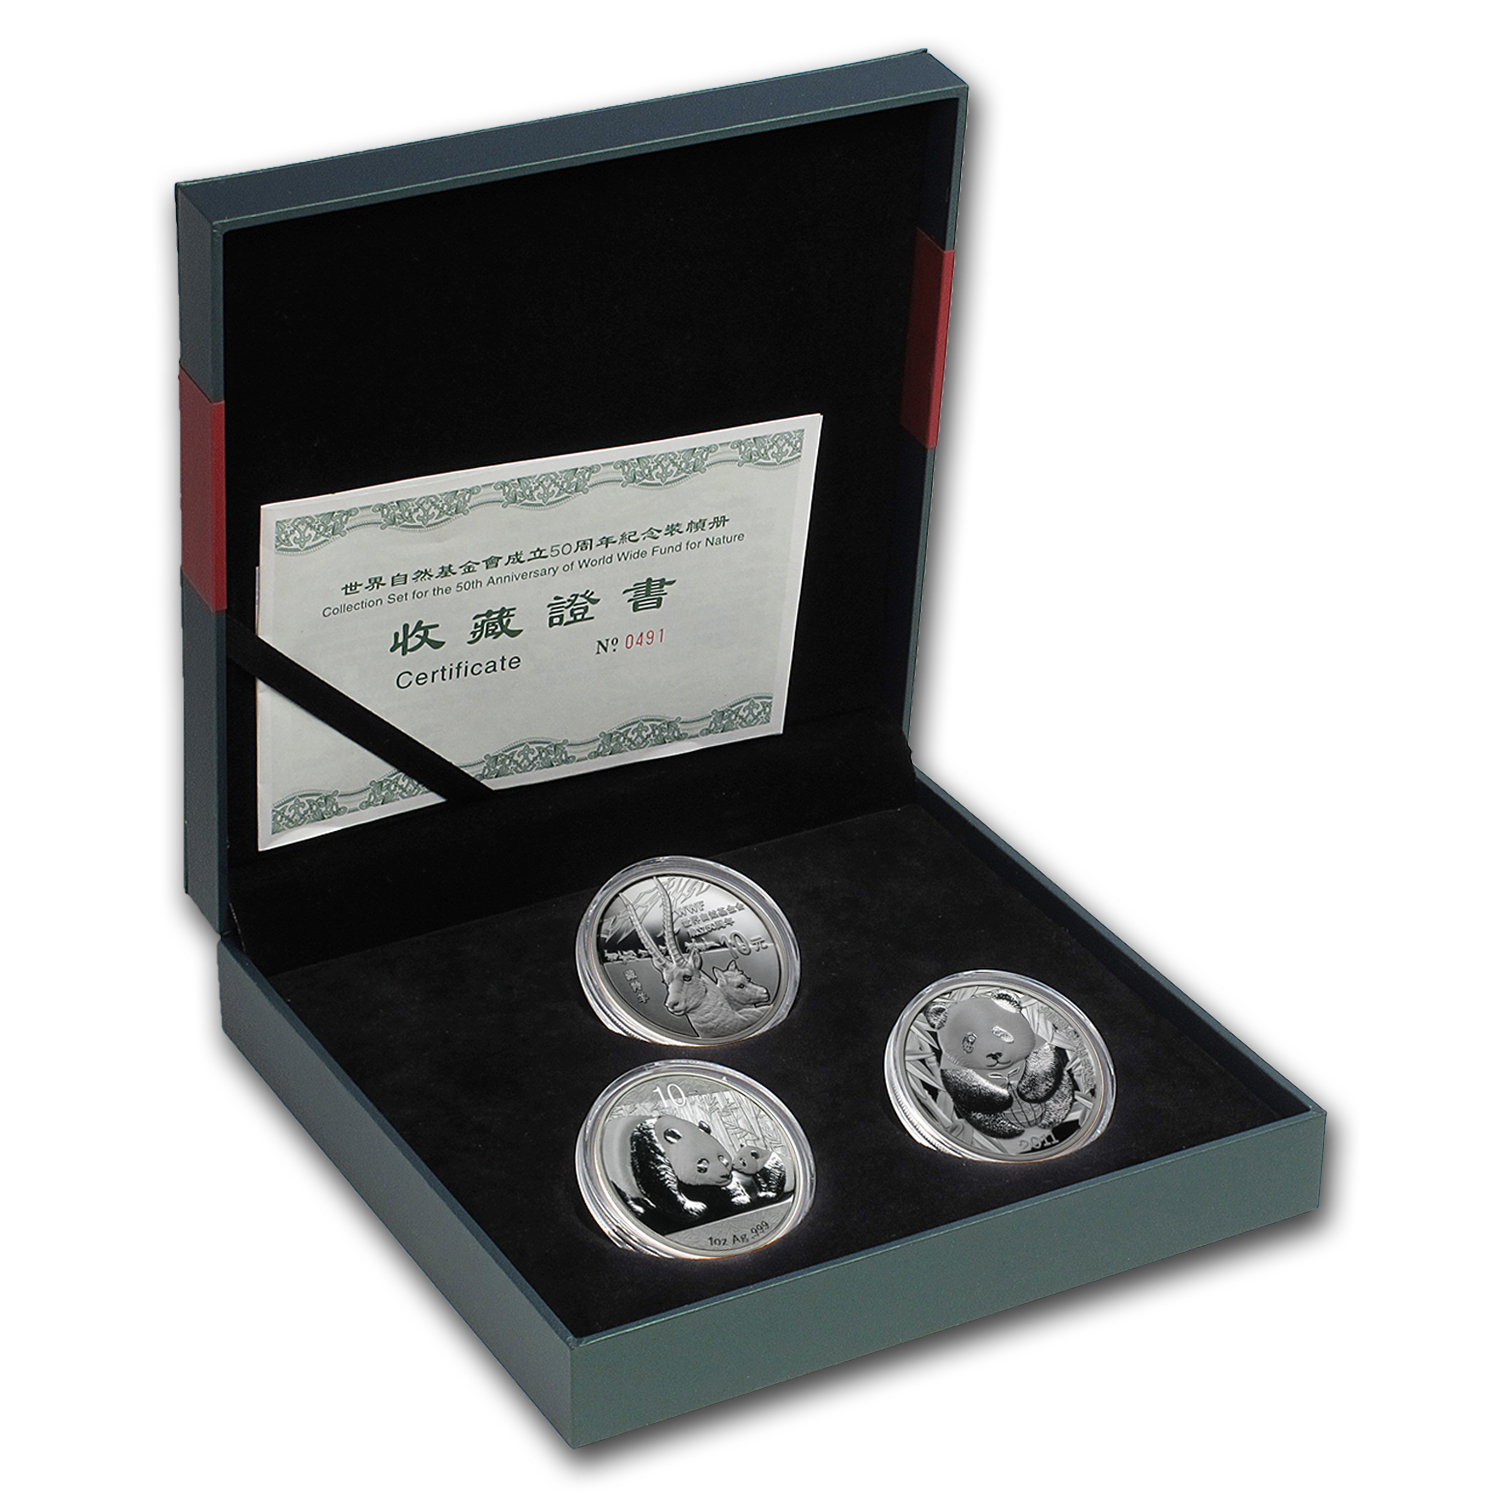 2011 China 3-Pc Proof Silver 50th Anniversary for WWF